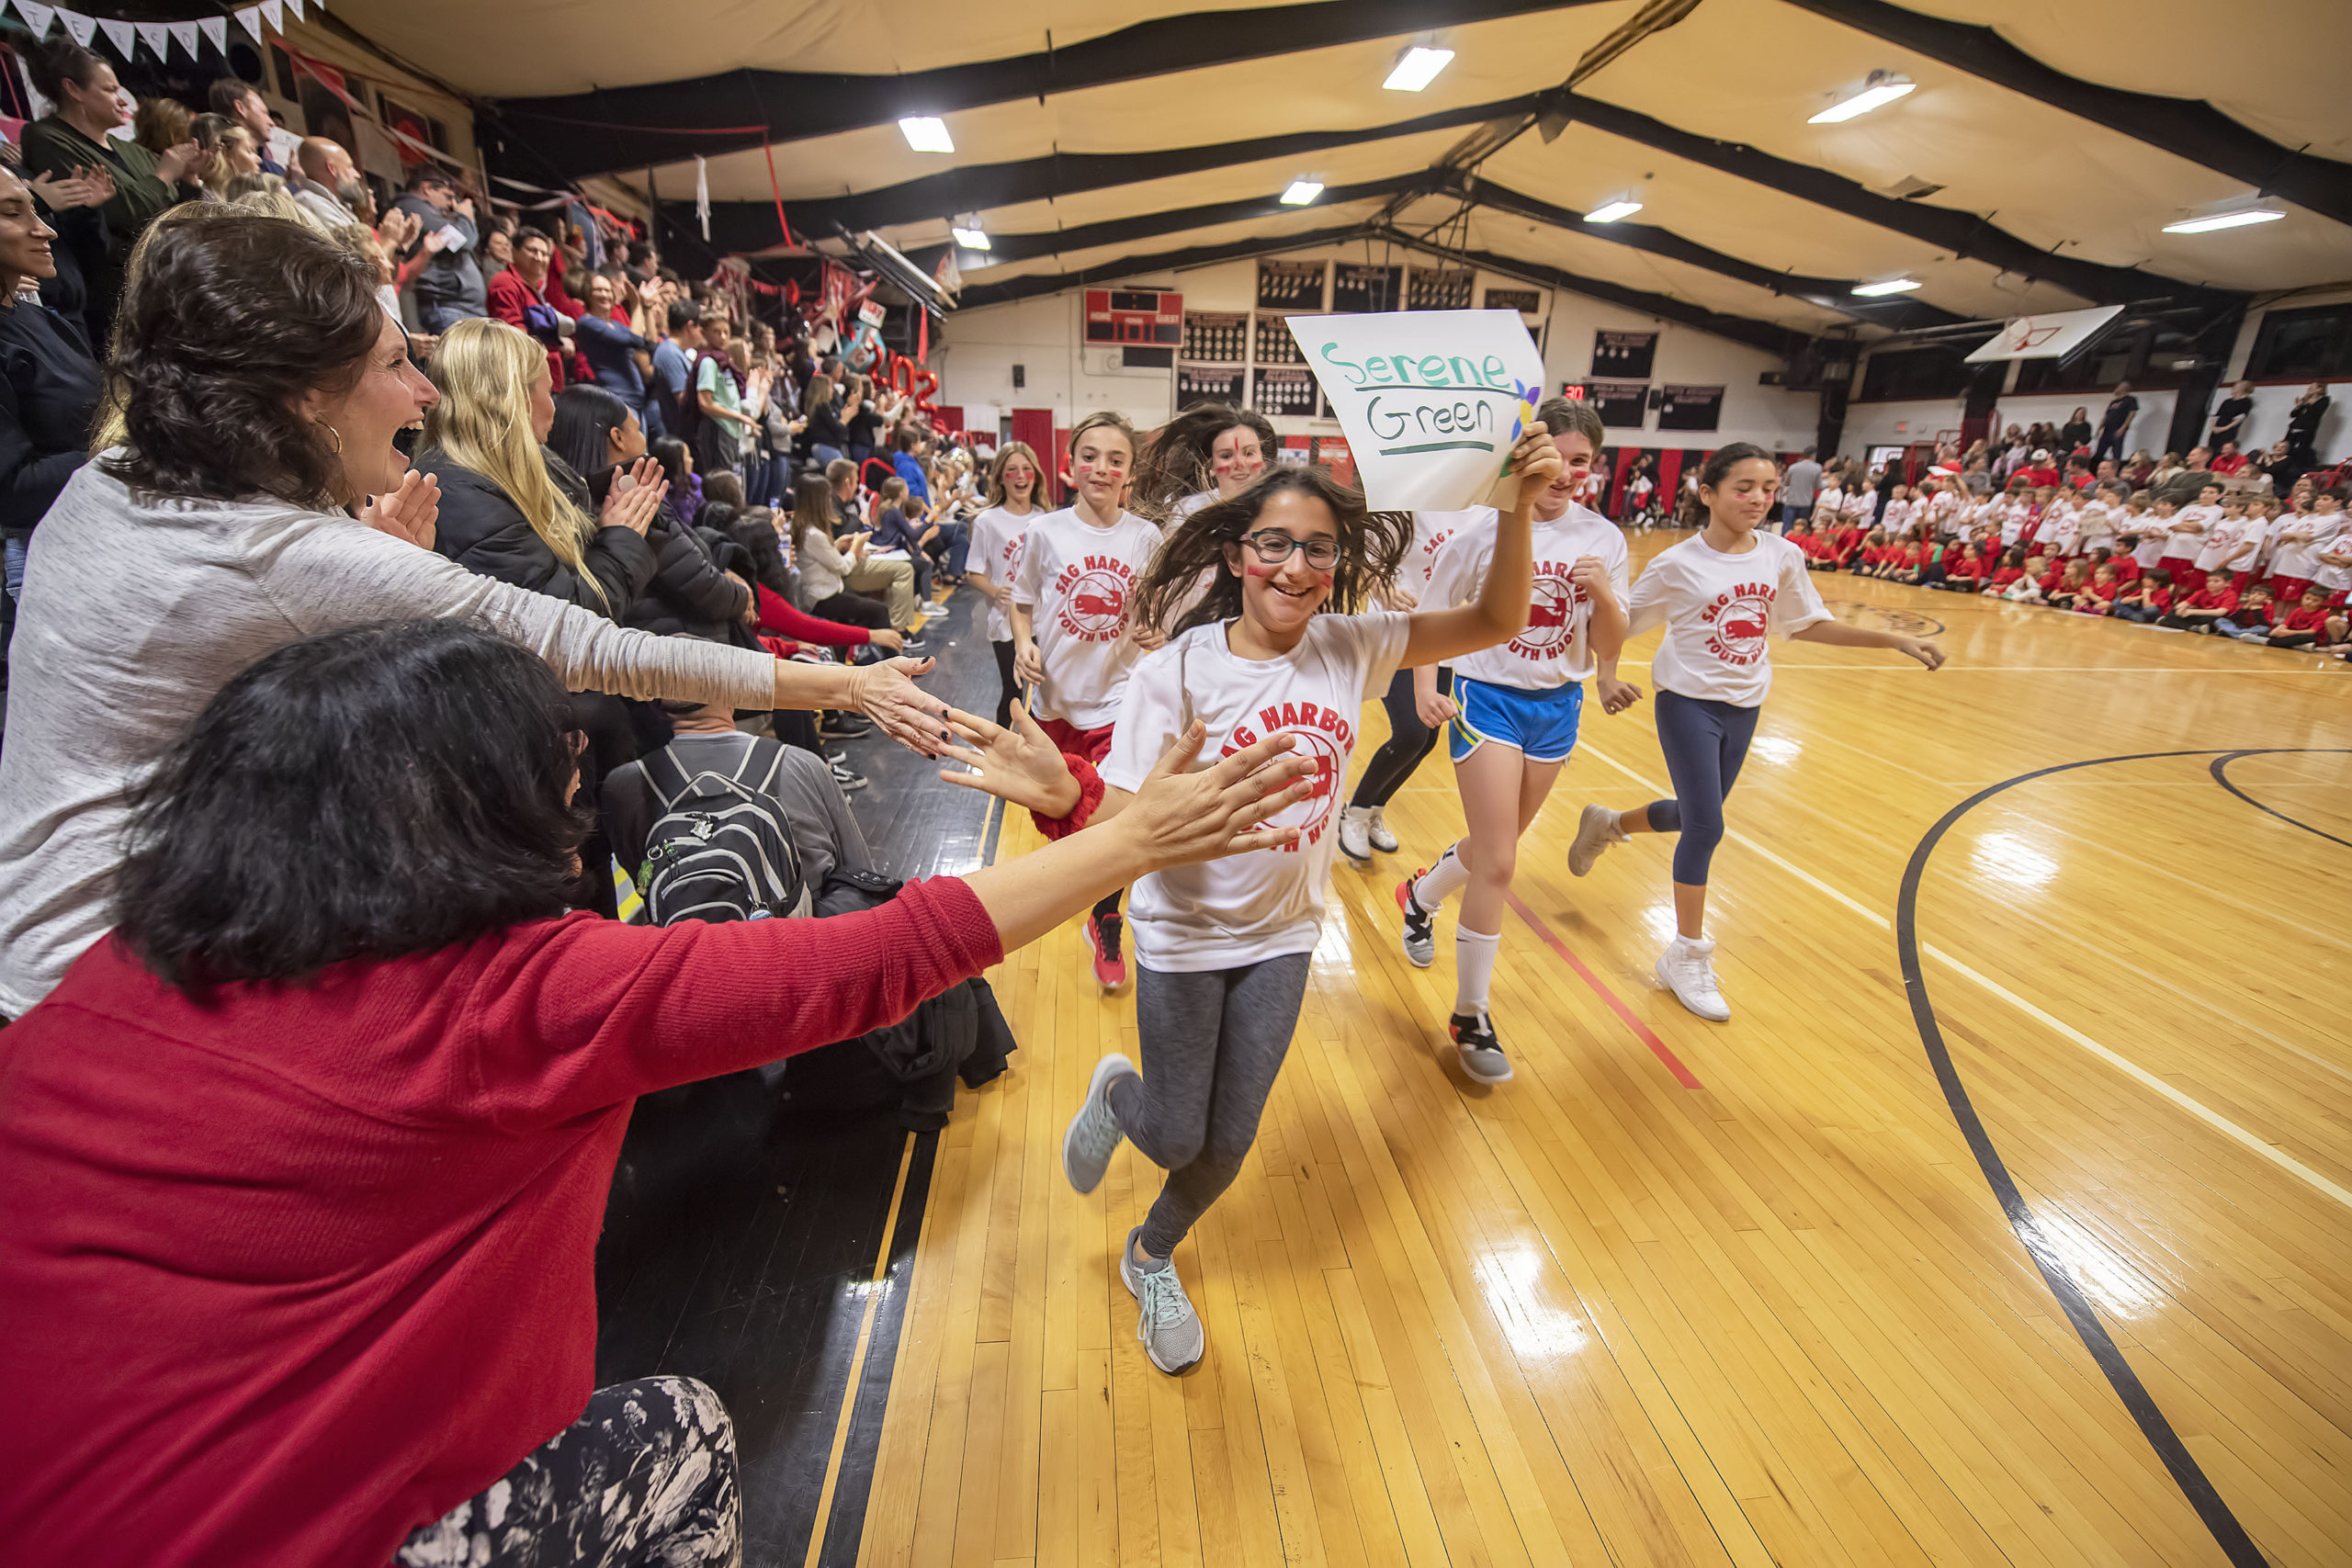 The Grand Parade of Sag Harbor Youth Hoops participants was held during the halftime of the Lady Whalers' game as part of the 2020 Spirit Night festivities at Pierson High School on Friday night.